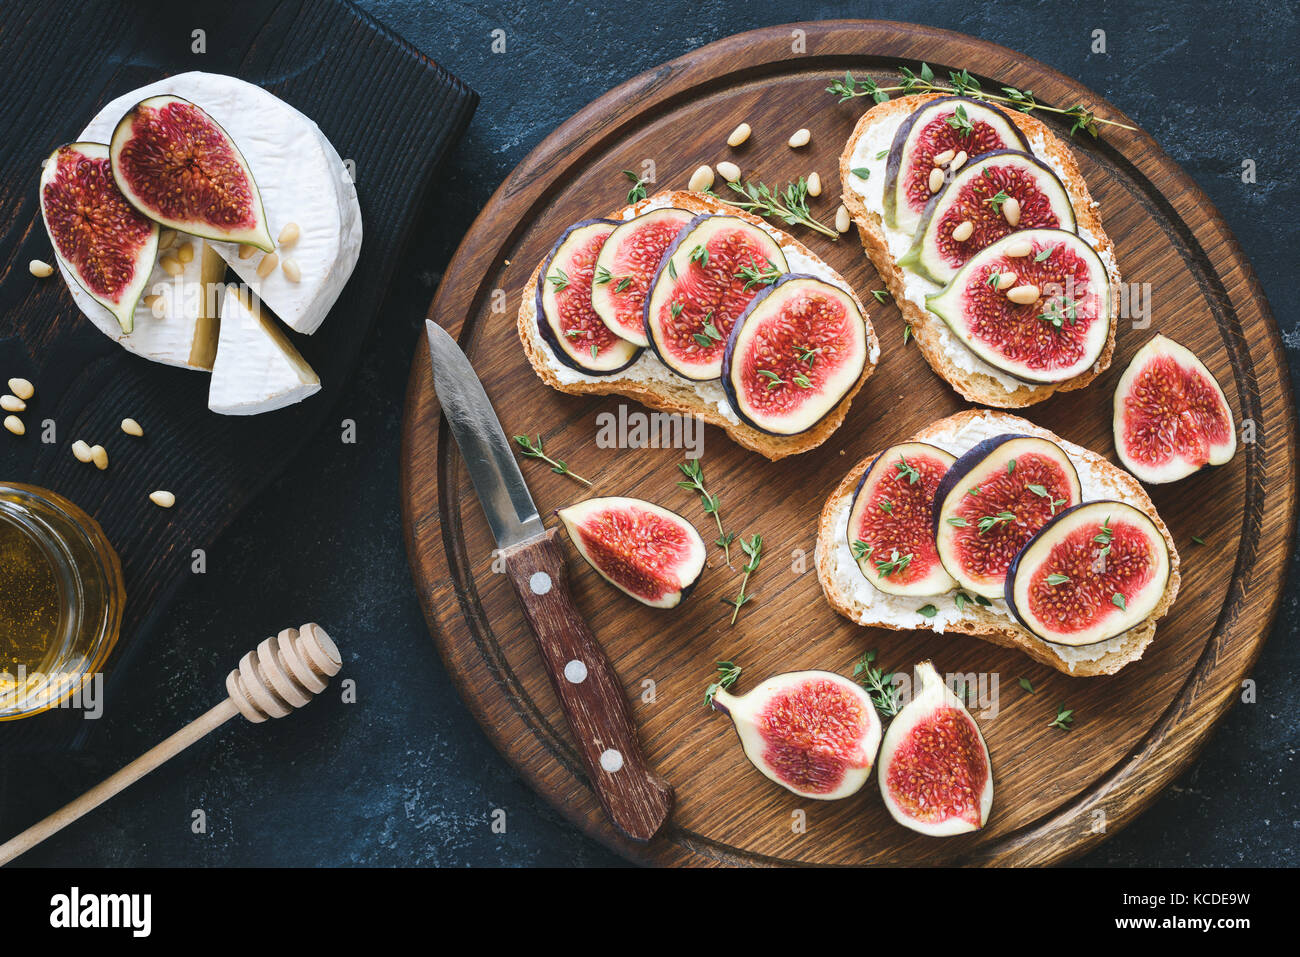 Bruschetta with fresh purple figs, ricotta cheese and honey on wooden cutting board served with brie camambert cheese - Stock Image